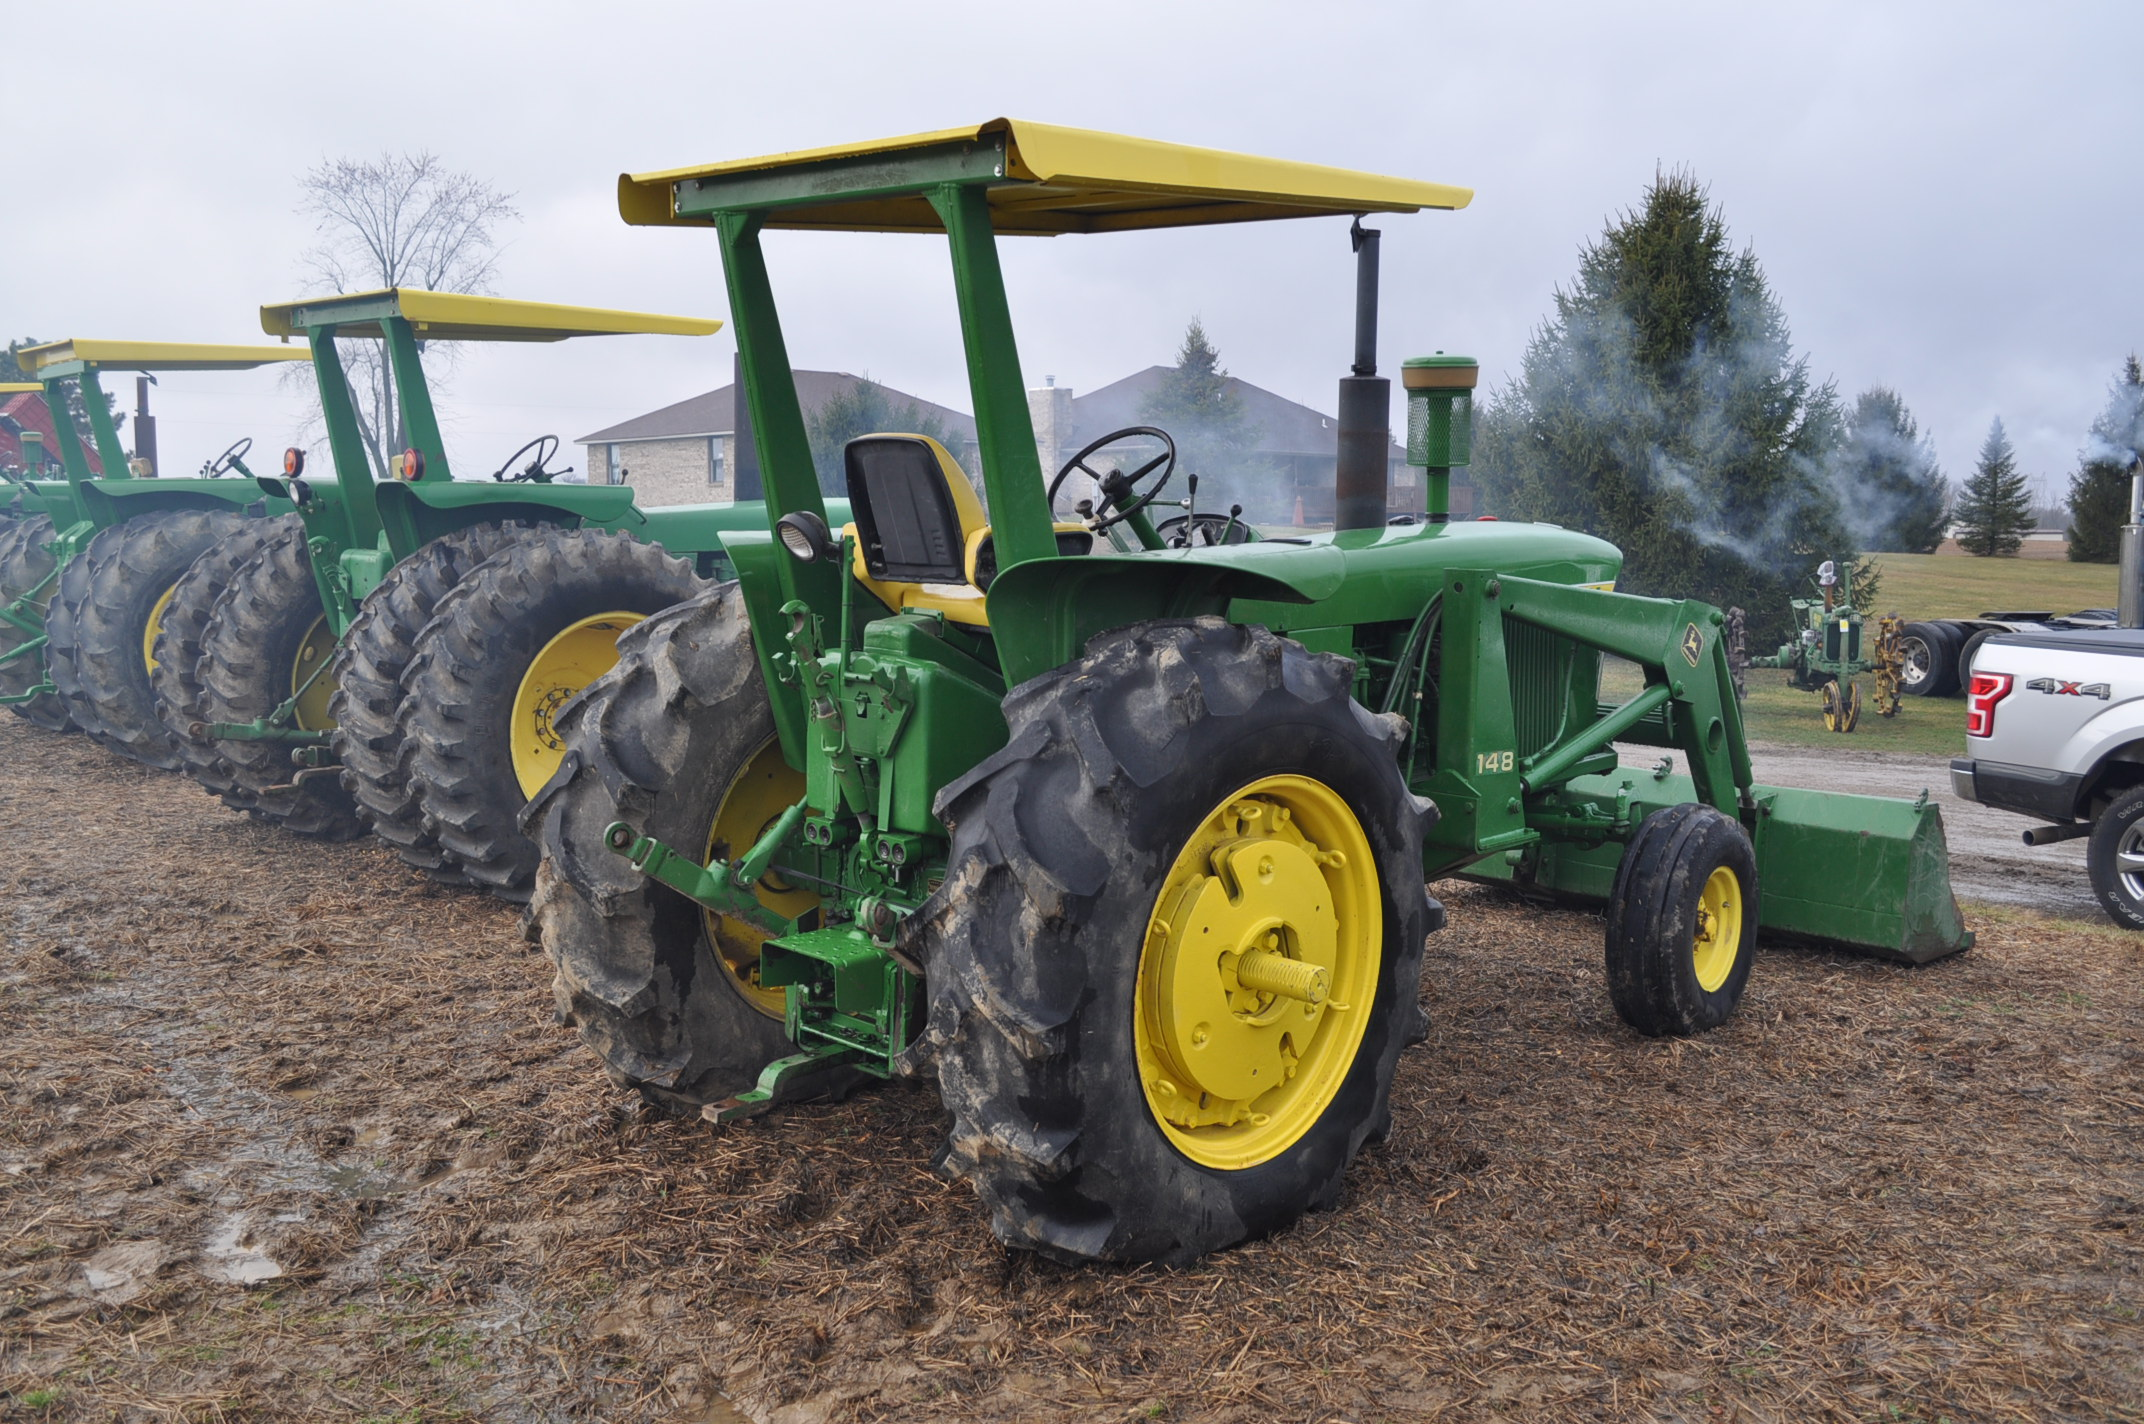 John Deere 4020 tractor, diesel, 18.4-34 tires w/ clamp on dual rims, 11L-15 front, ROPS w/ - Image 3 of 22